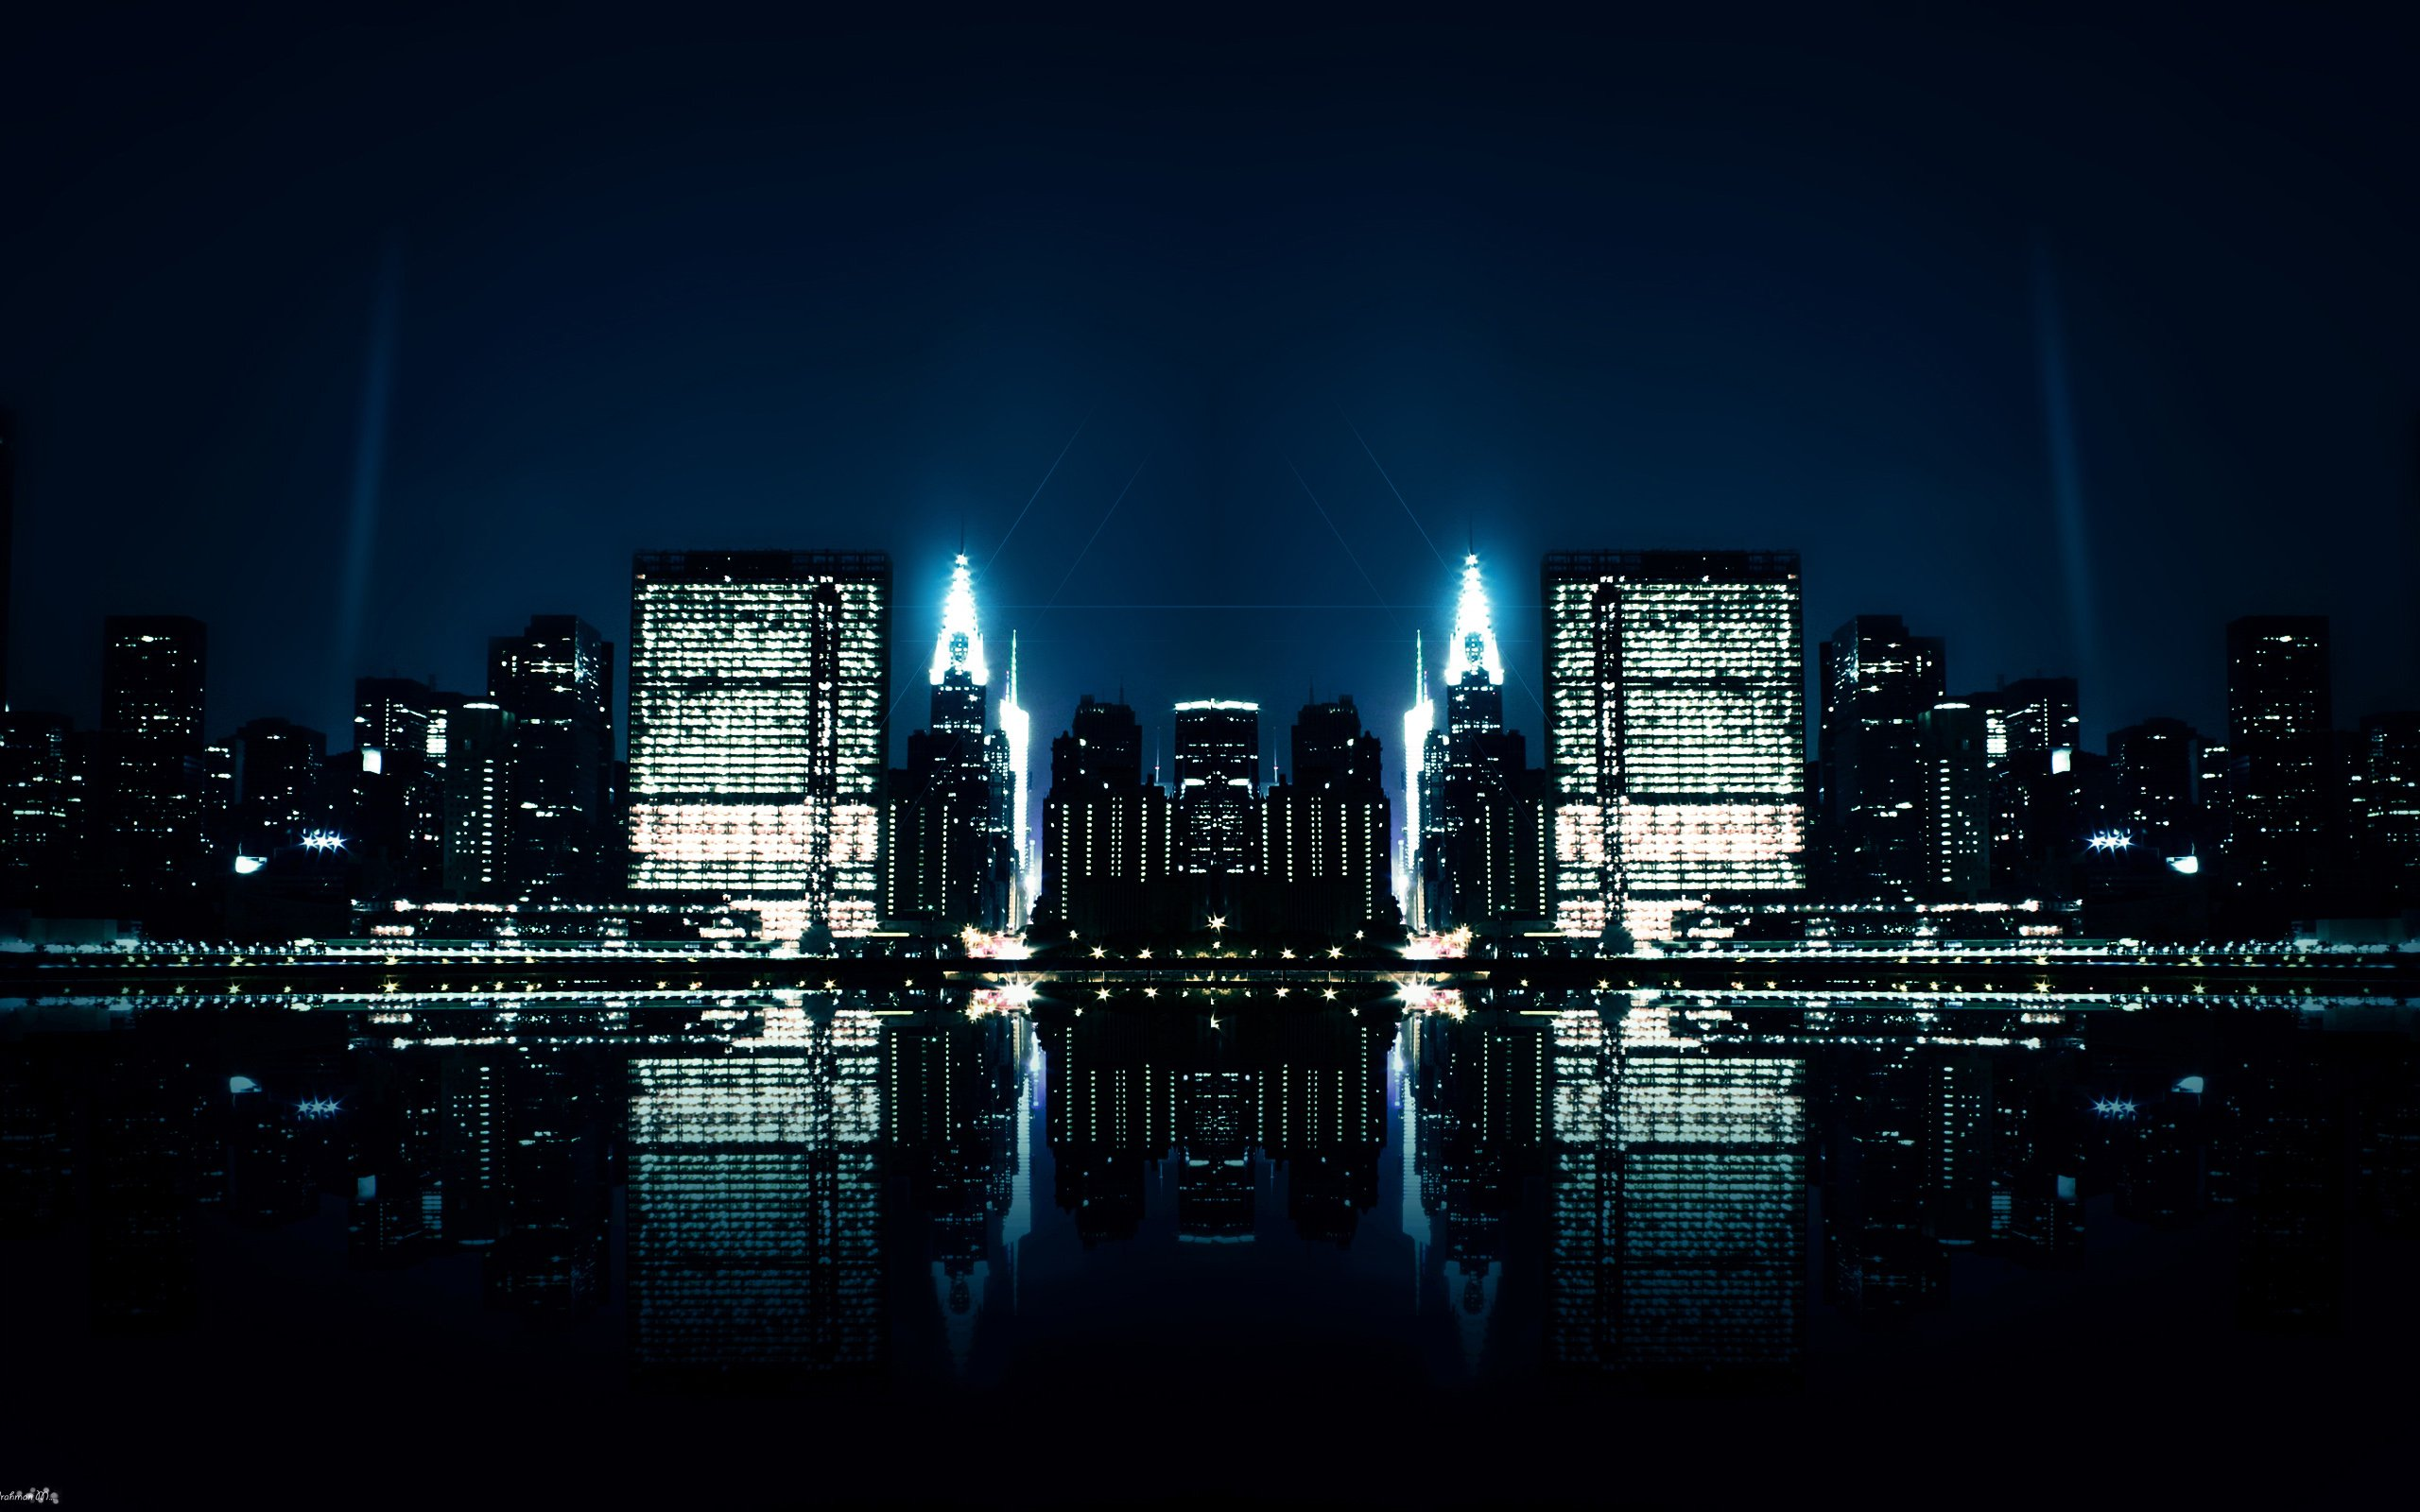 City Night Reflections Wallpapers HD Wallpapers 2560x1600